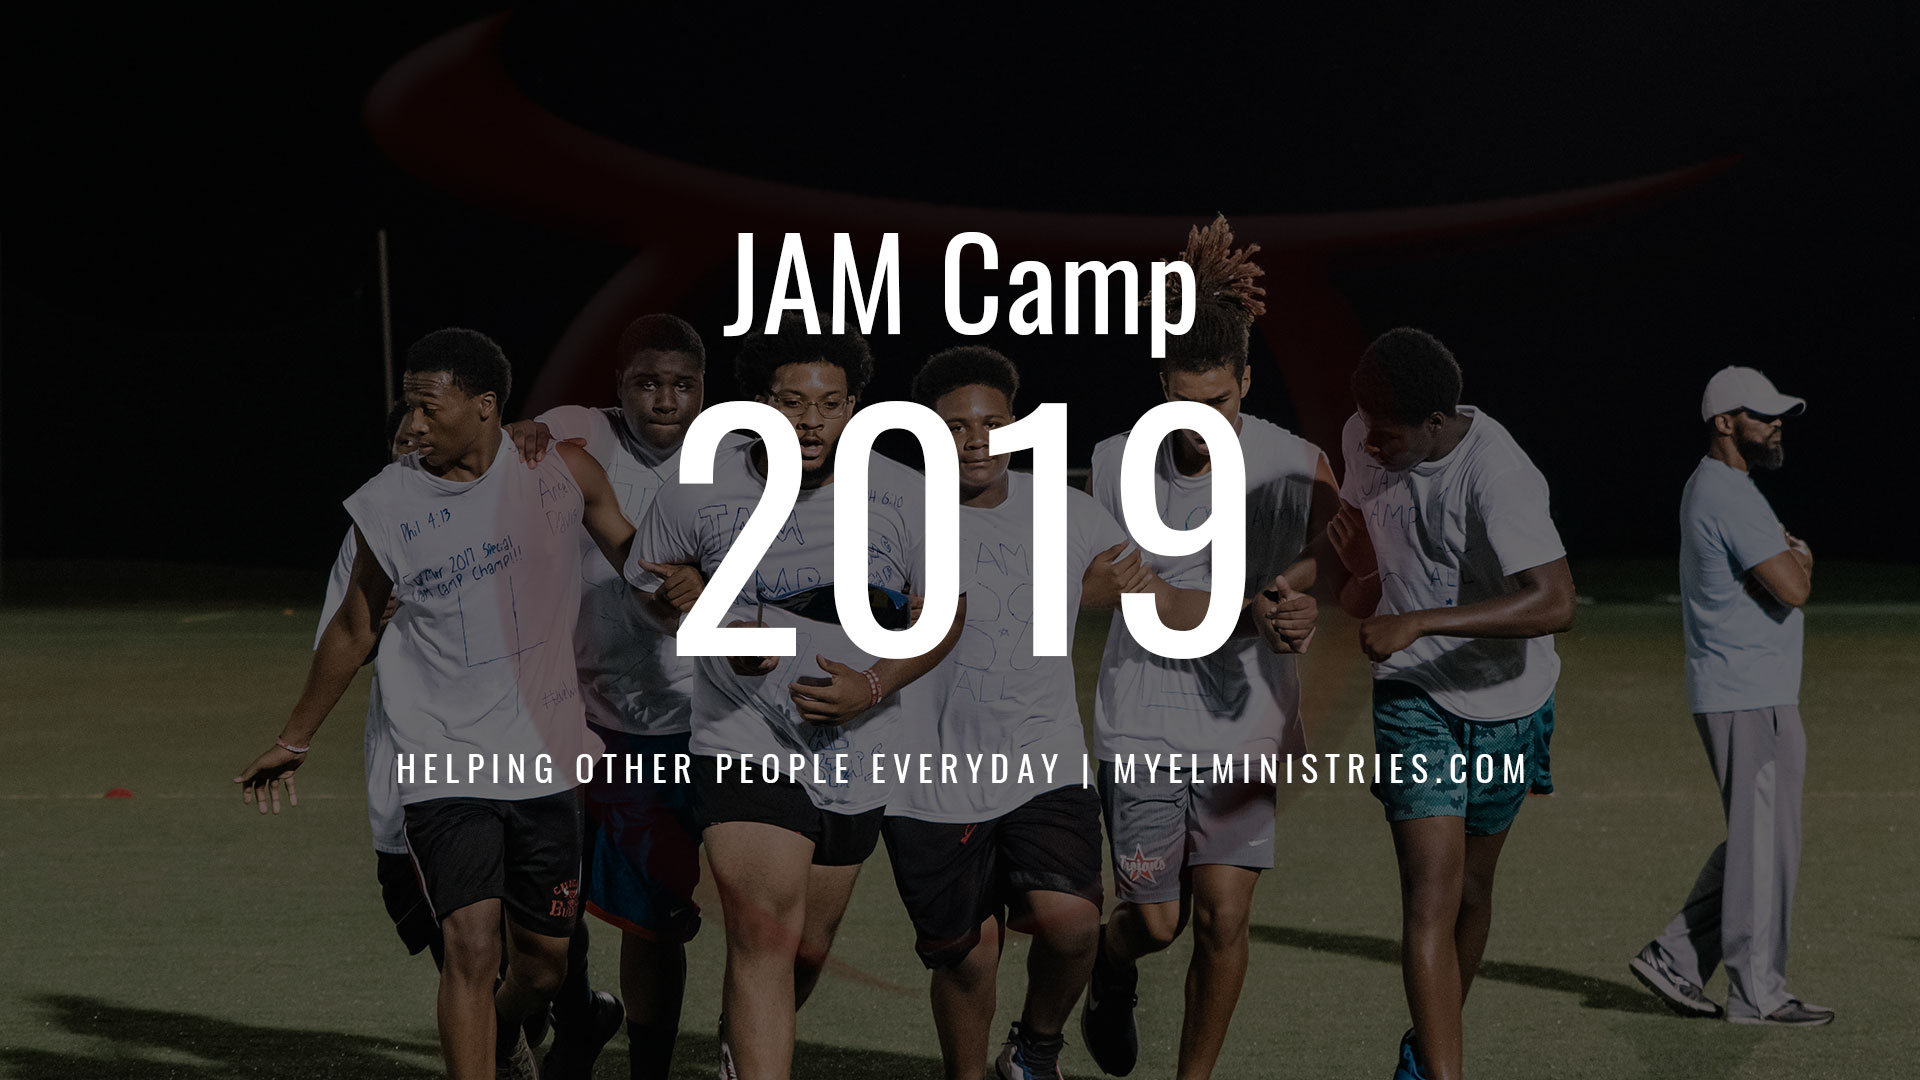 image for 2019 JAM Camp